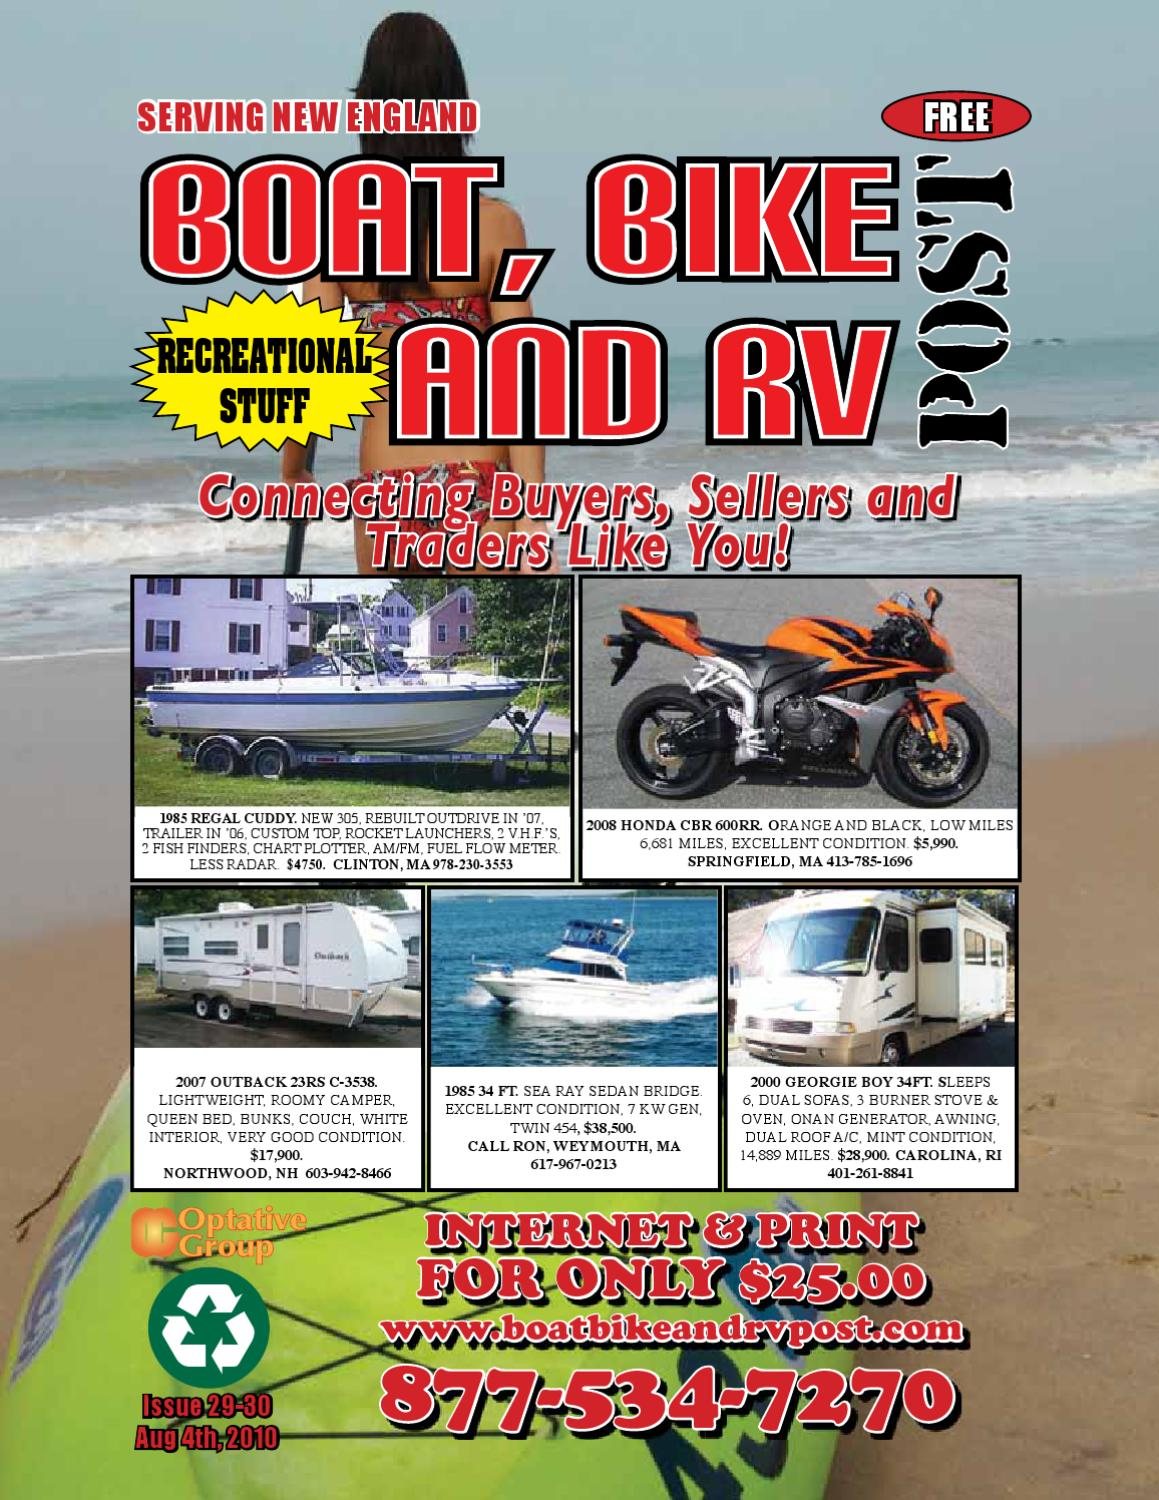 Boat Bike And Rv Post Issue 29 30 2010 By 1clickaway Issuu Georgie Boy Fuel Filter Location